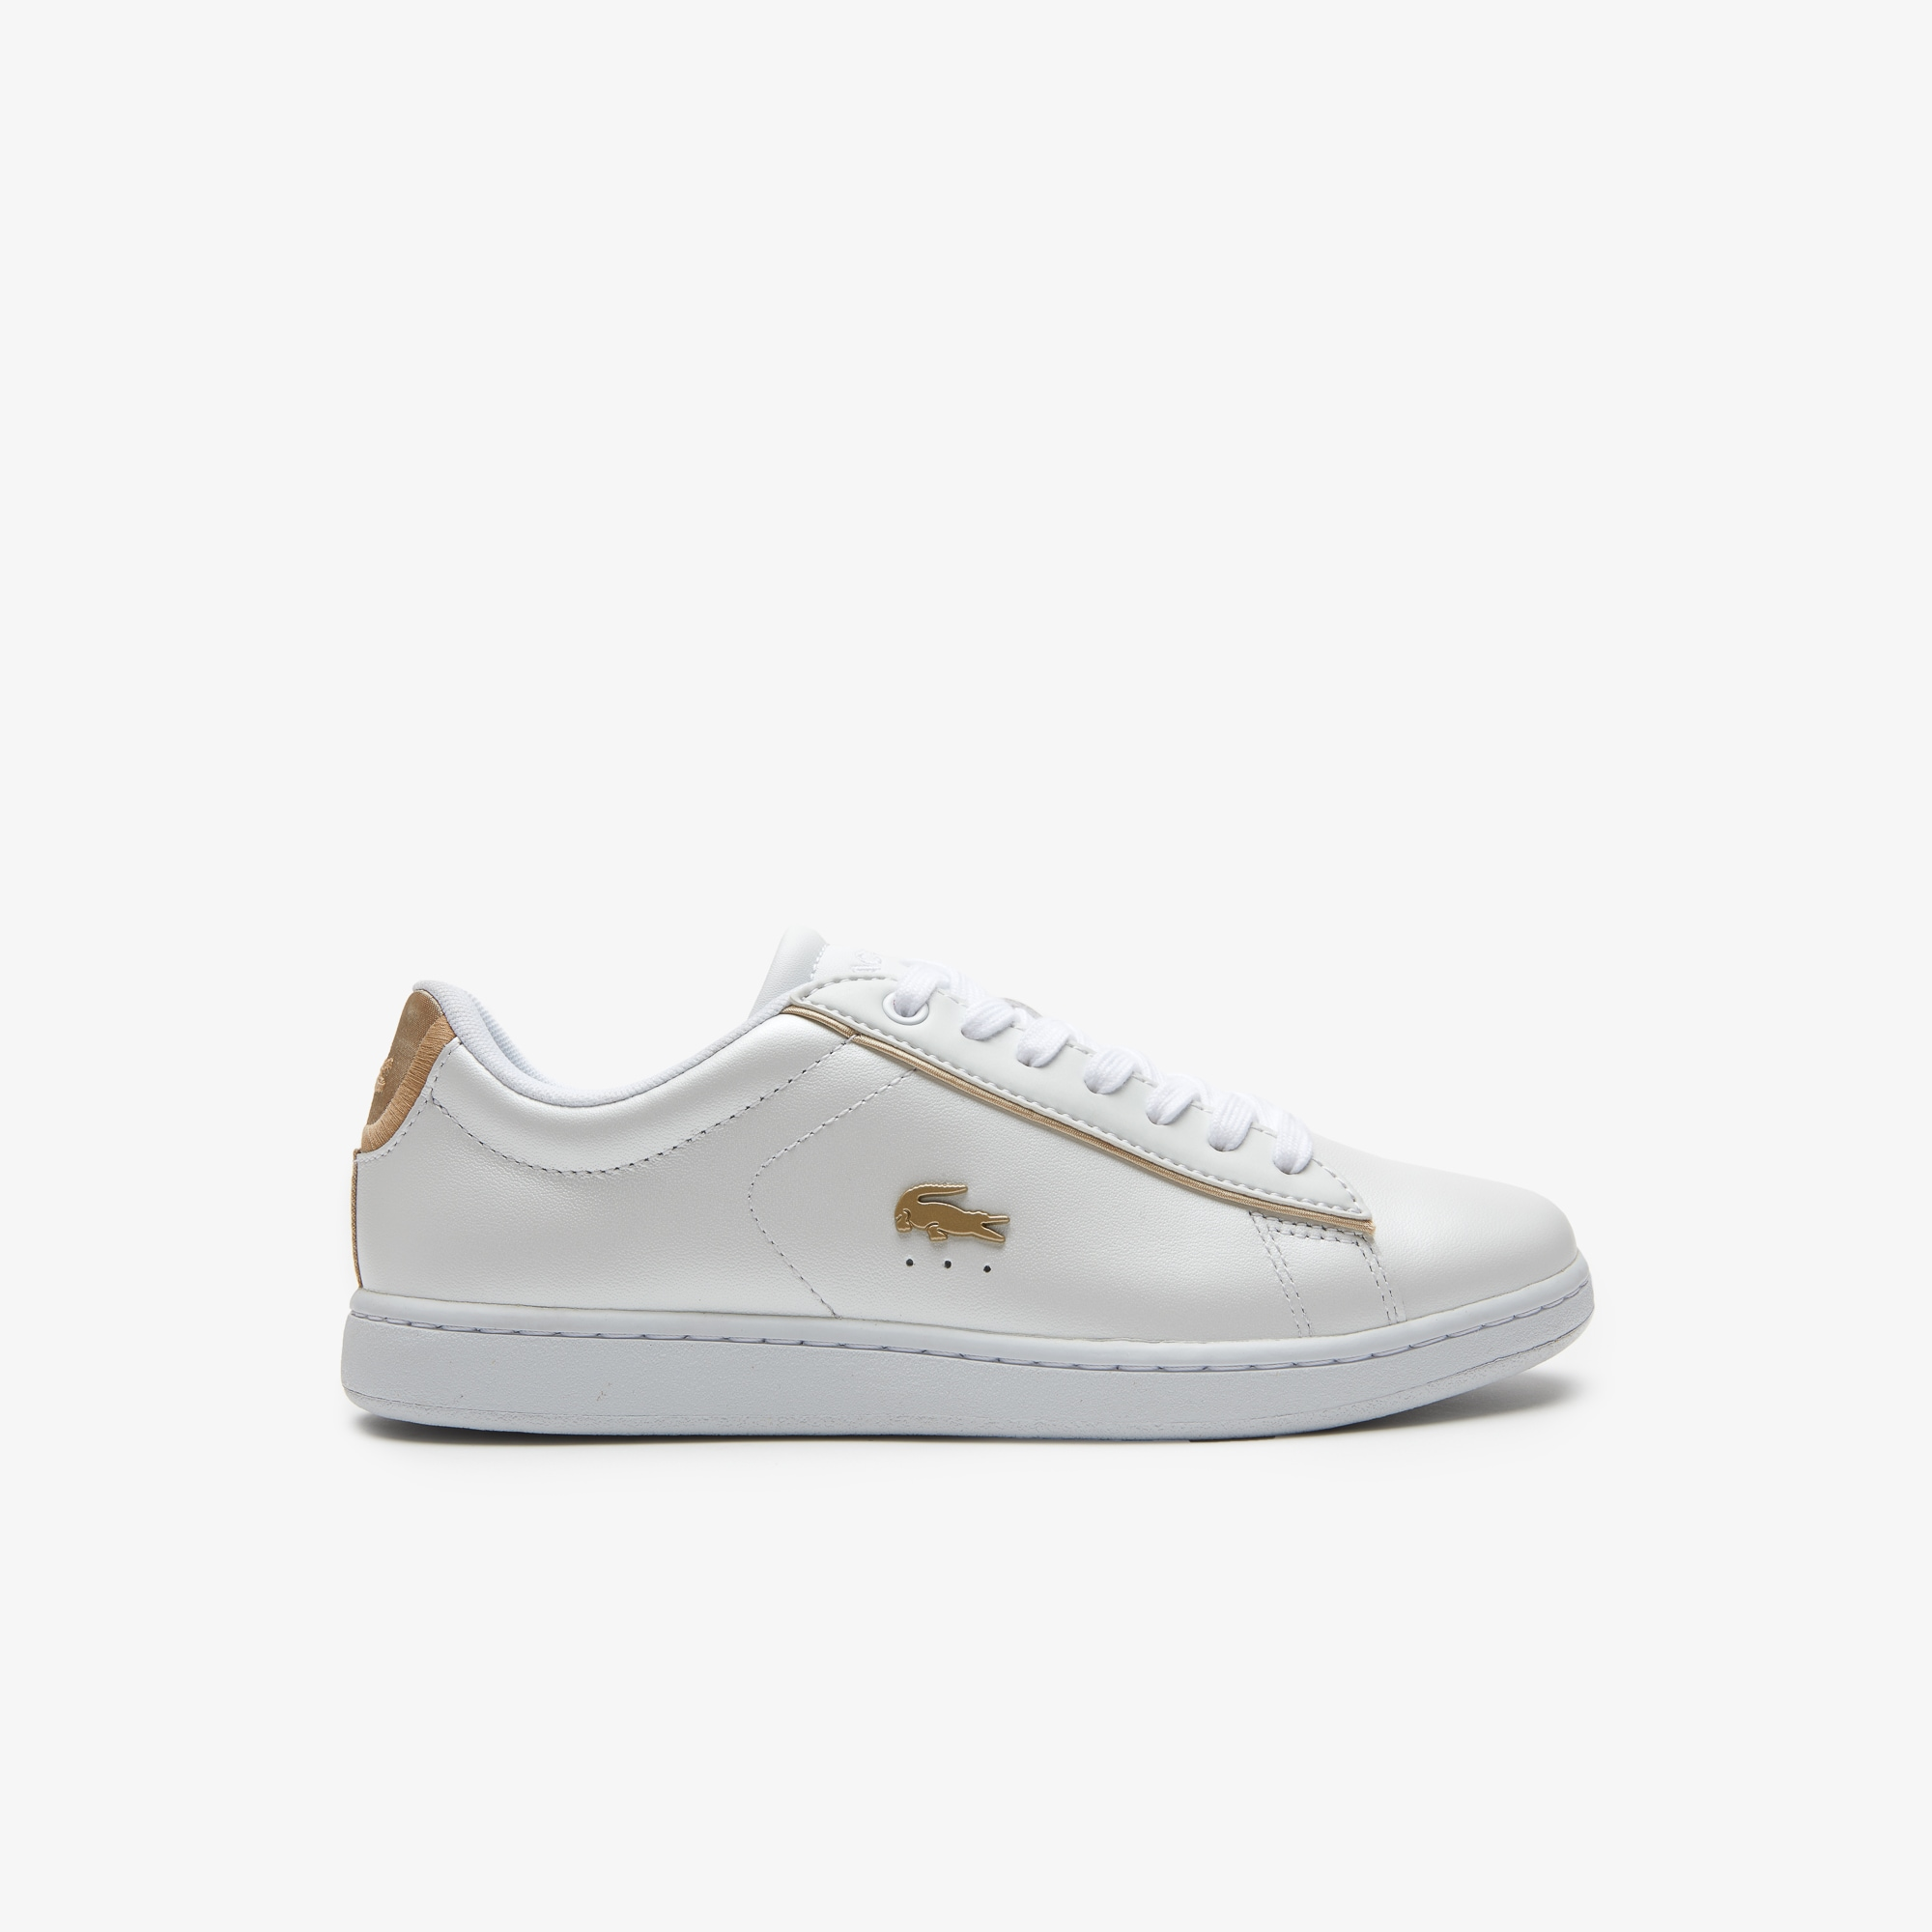 847059a9ee888d Women s Carnaby Evo Contrast Leather Trainers